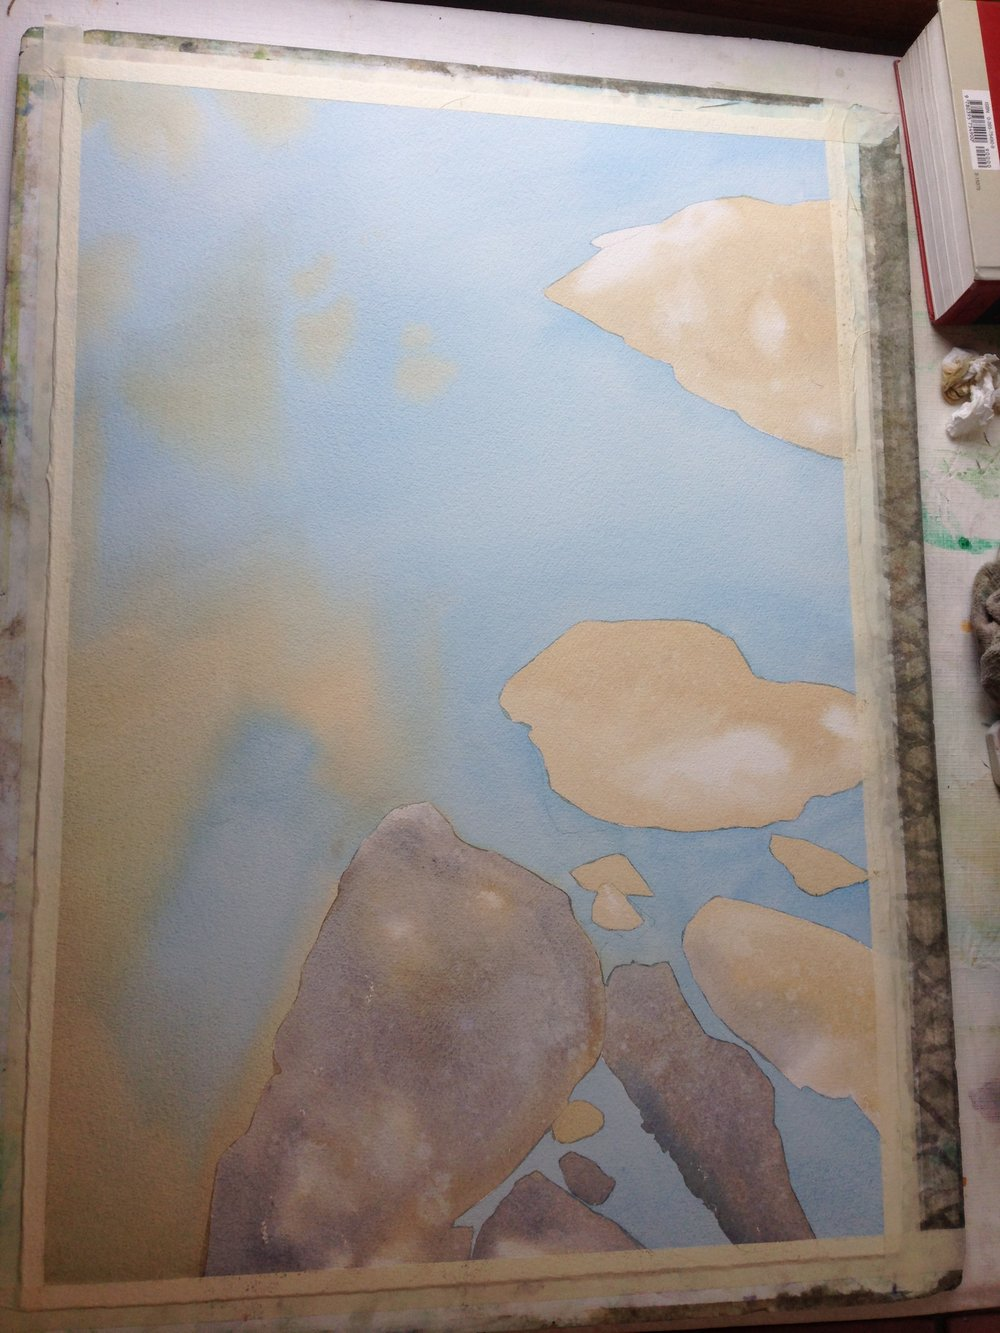 step 2- the stones, with the same muted yellow Ochre mix.